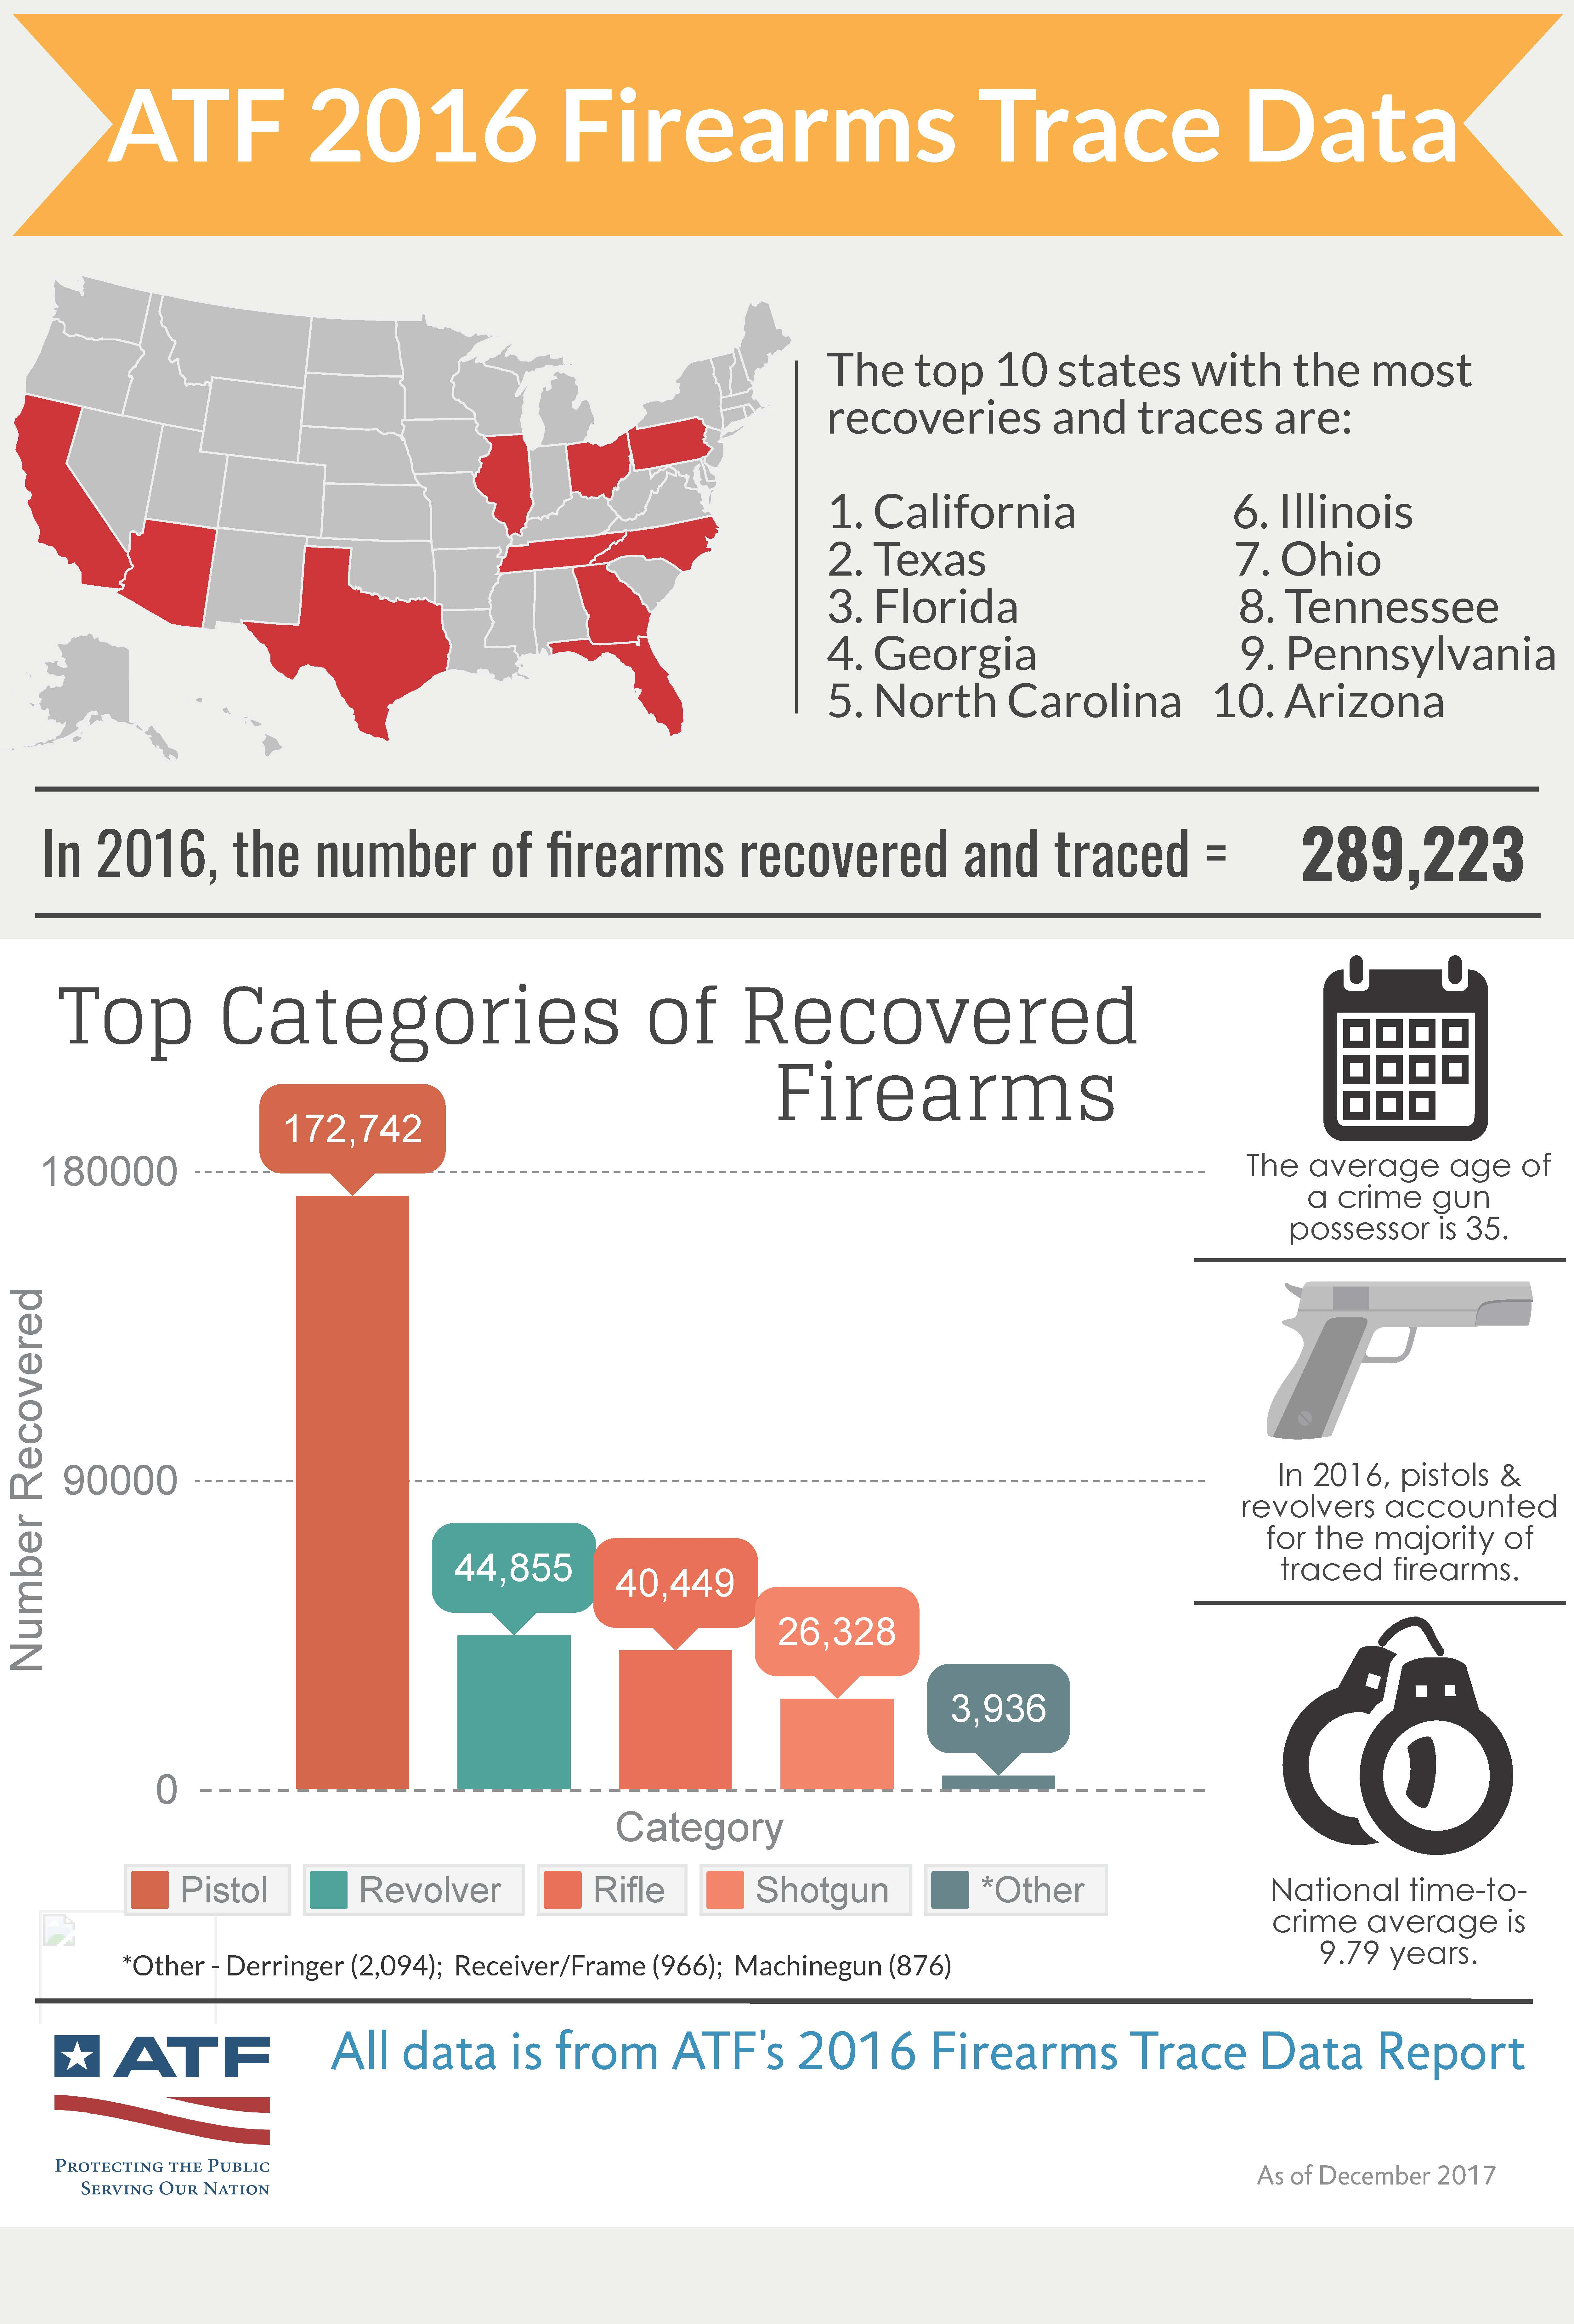 ATF 2016 Firearms Trace Data